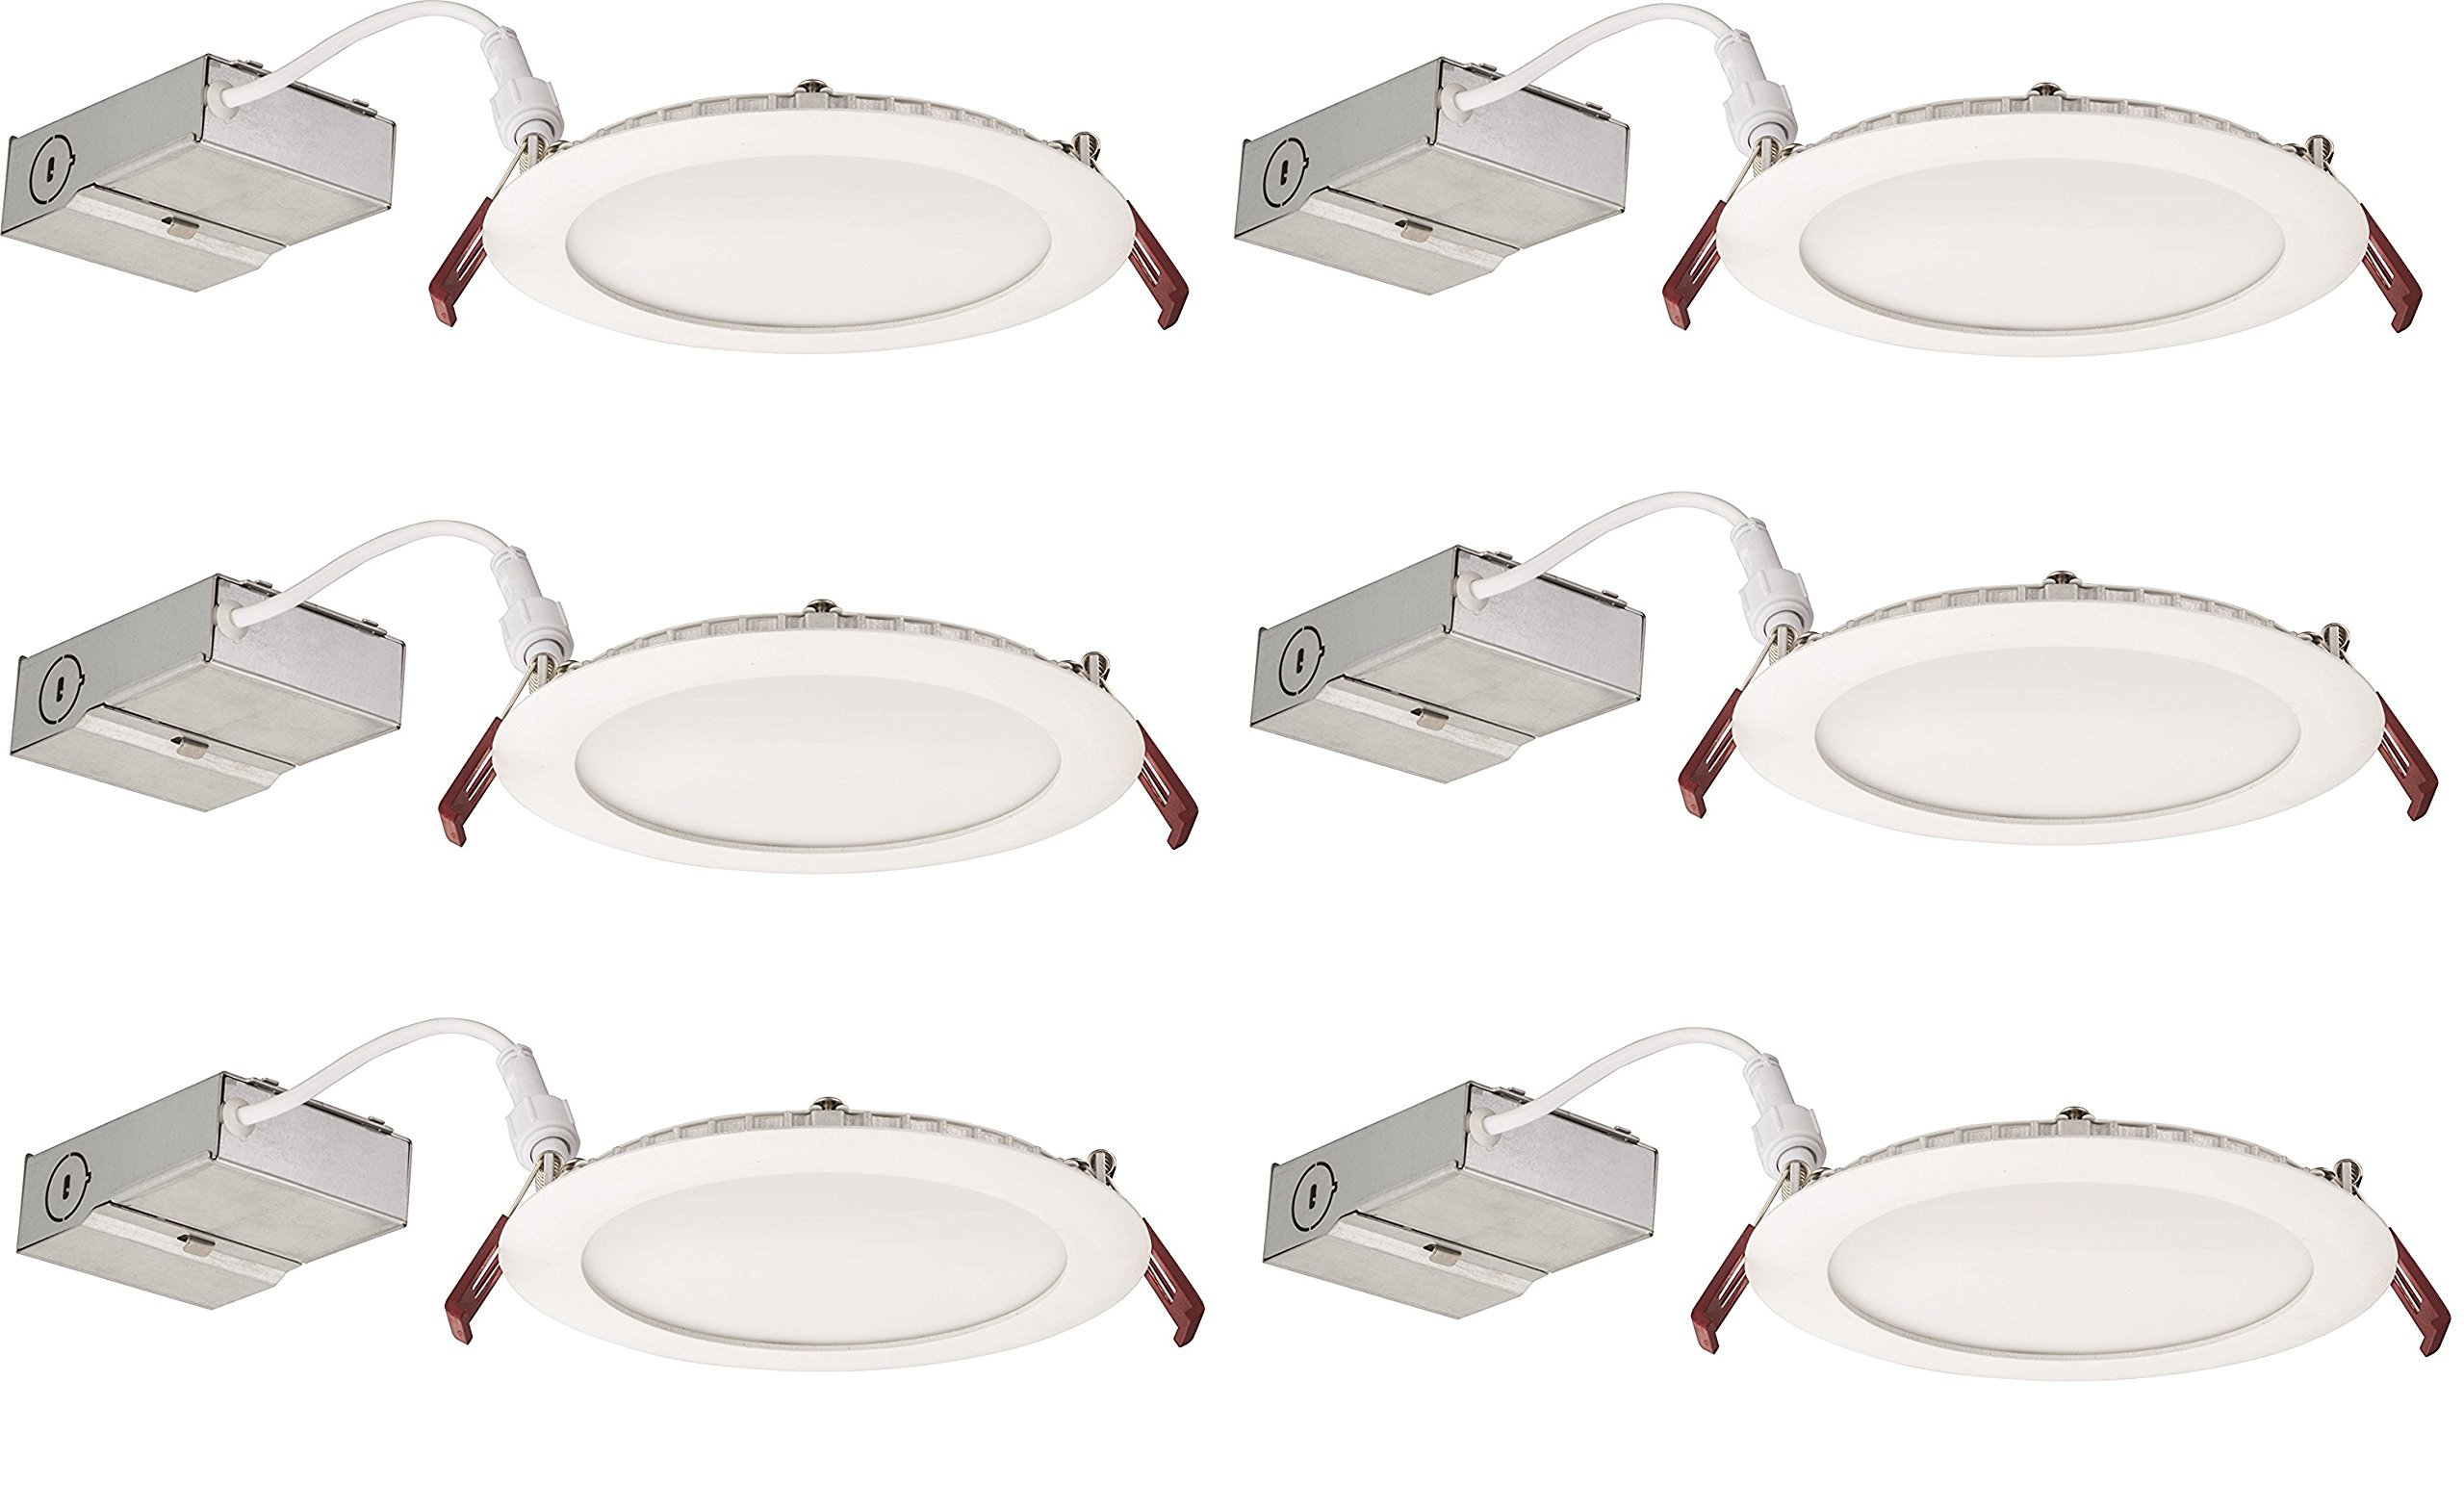 Lithonia Lighting (Pack of 6) 13W Ultra Thin 6'' Dimmable Recessed Ceiling Light, 3000K, White - Easy to install - Save time and money - Energy Efficient LED Lighting